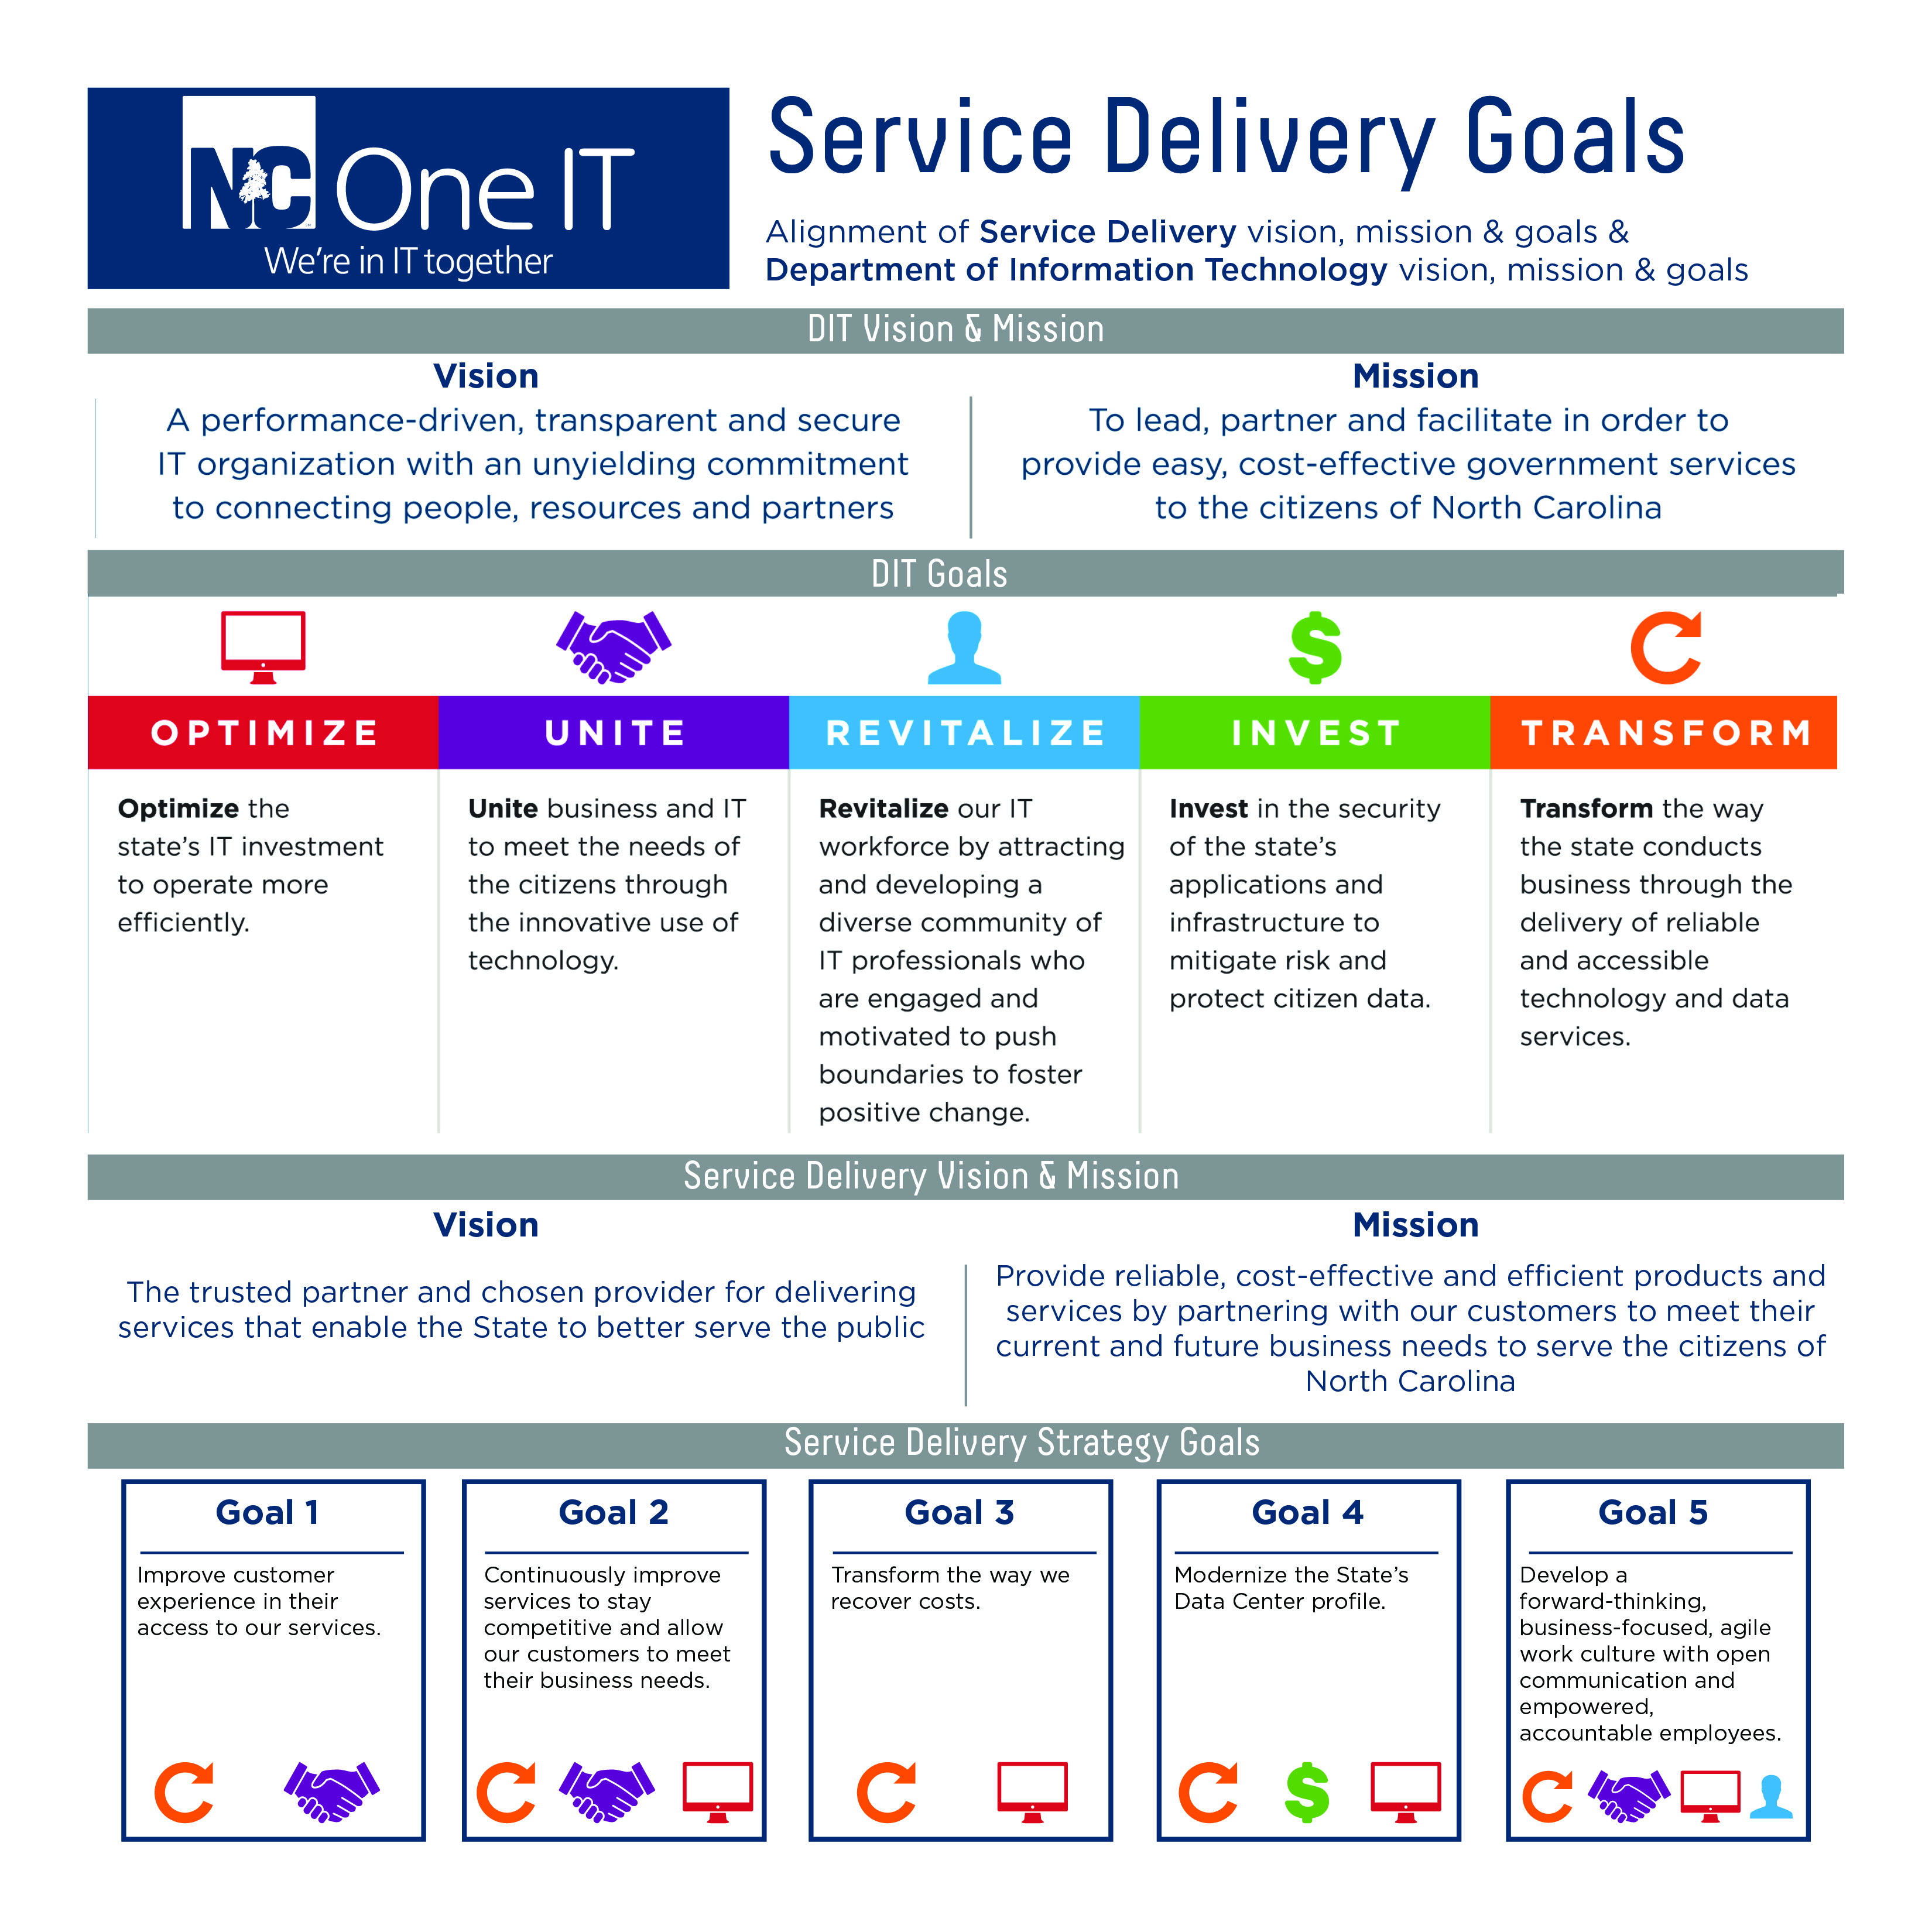 Service Delivery: Teamwork Makes the Dream Work | NC